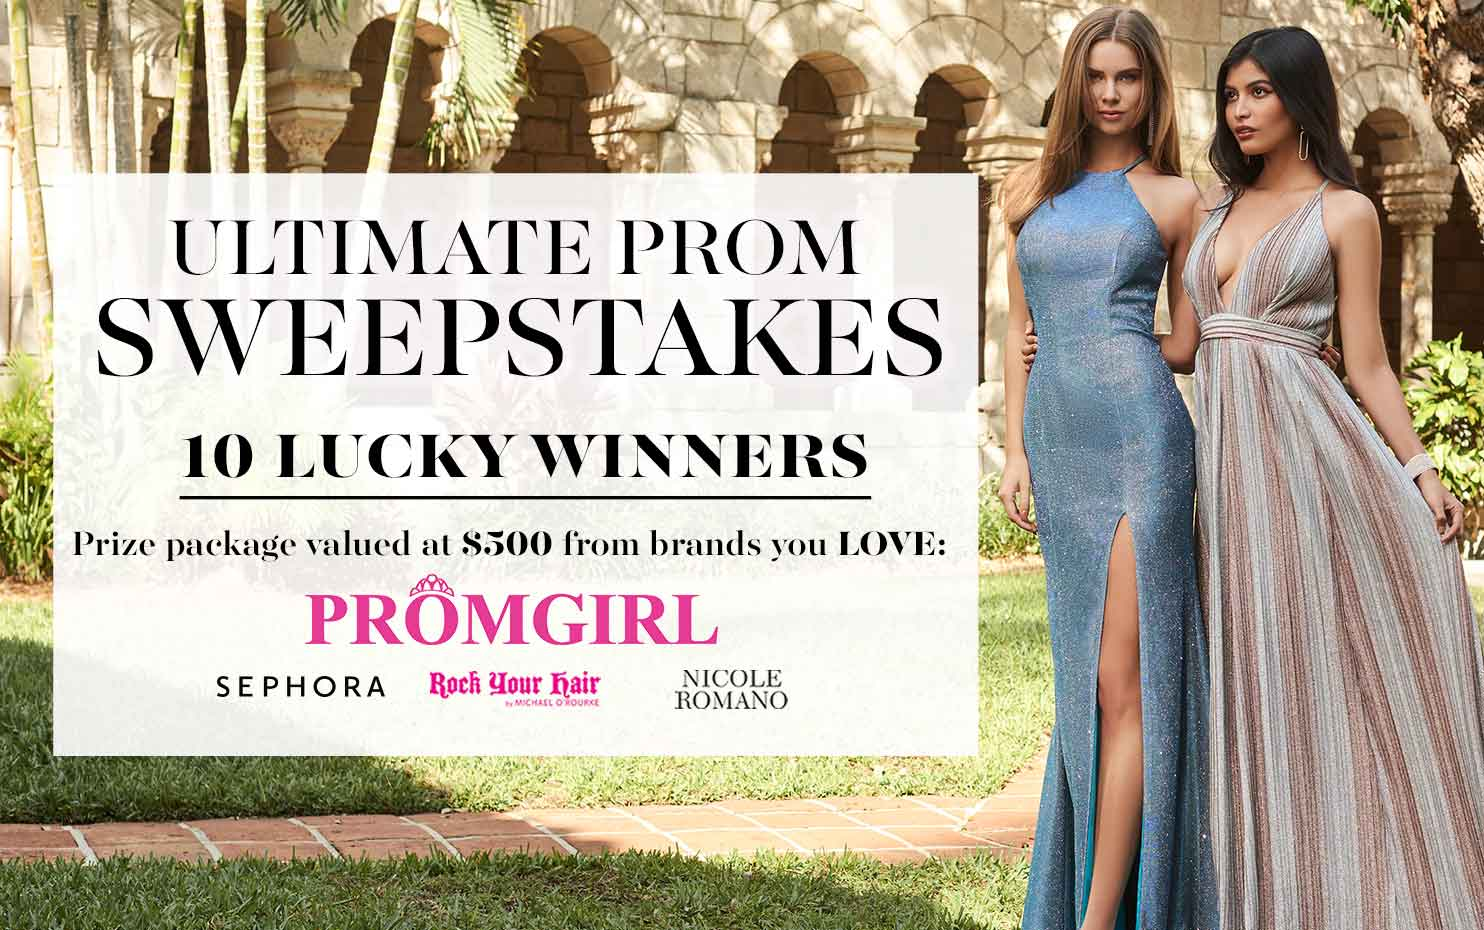 ENTER TO WIN: ULTIMATE PROM 2019 SWEEPSTAKES